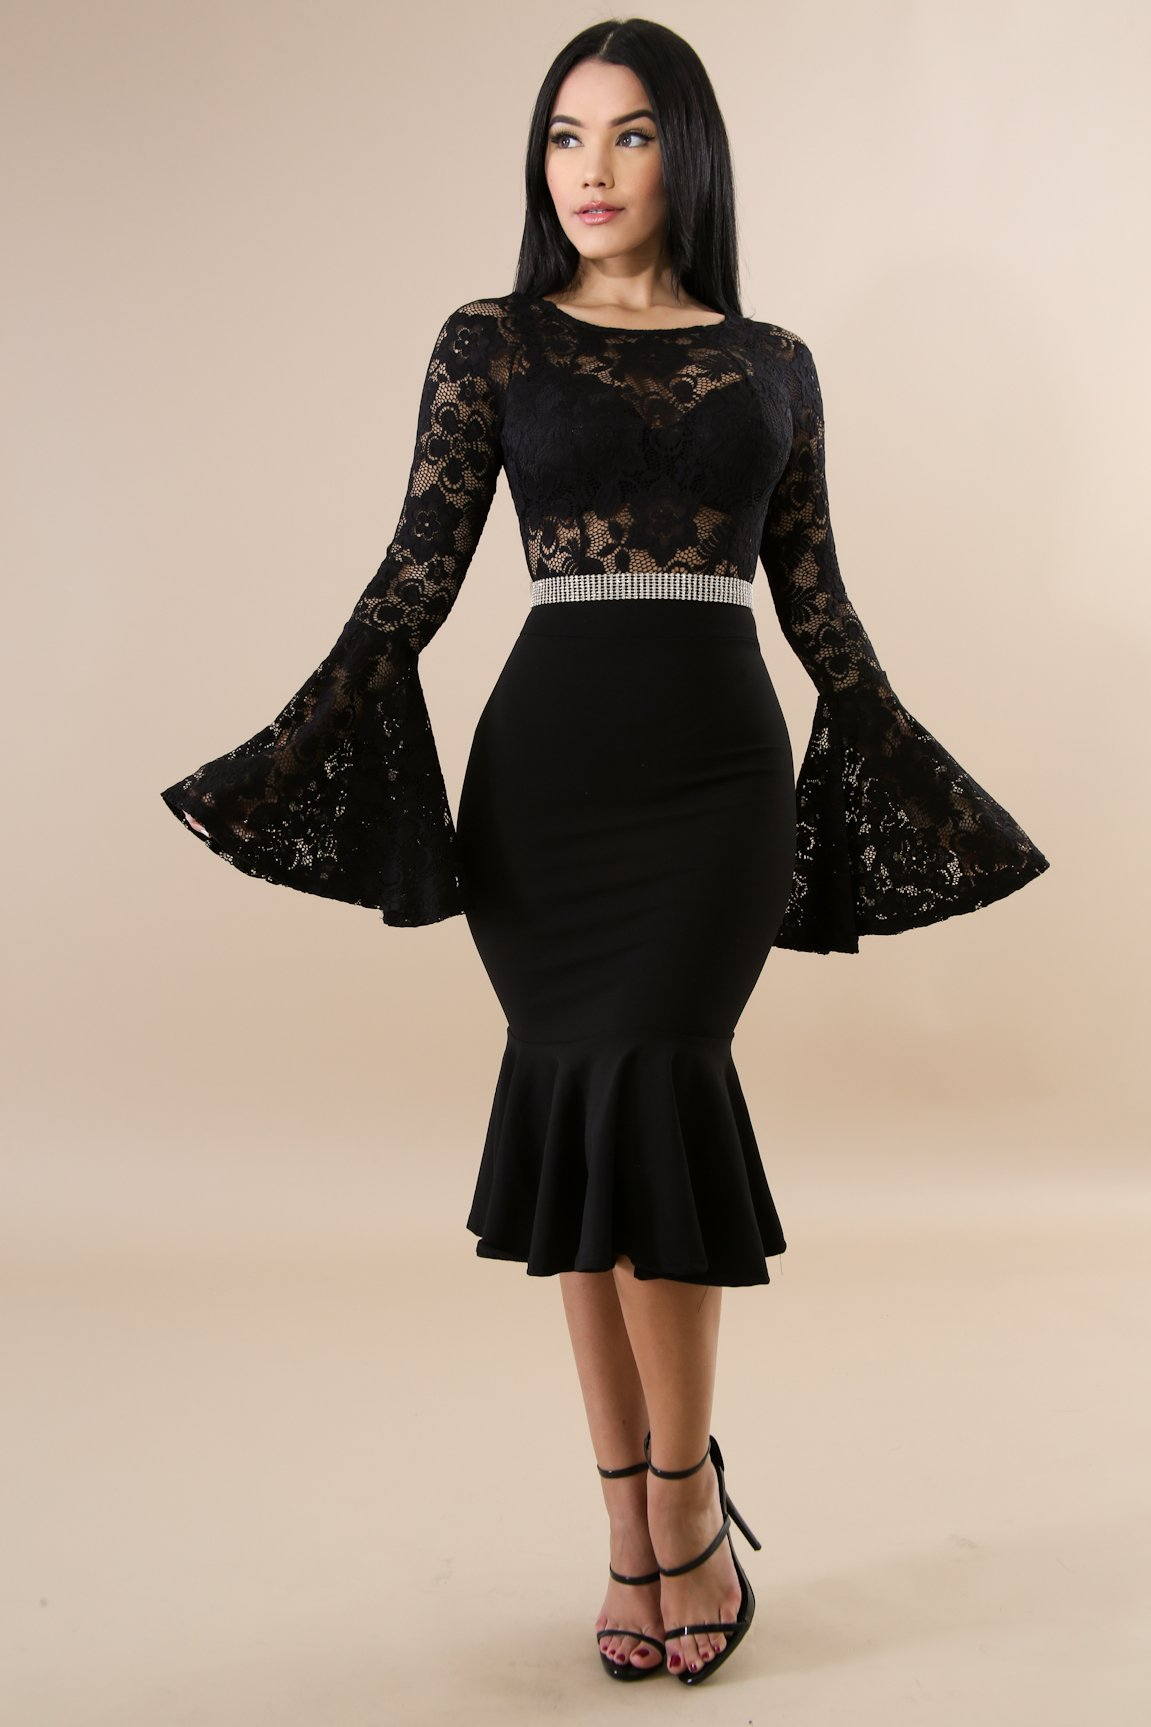 Lace bell mermaid body-con dress features 252a3b5e4e0a